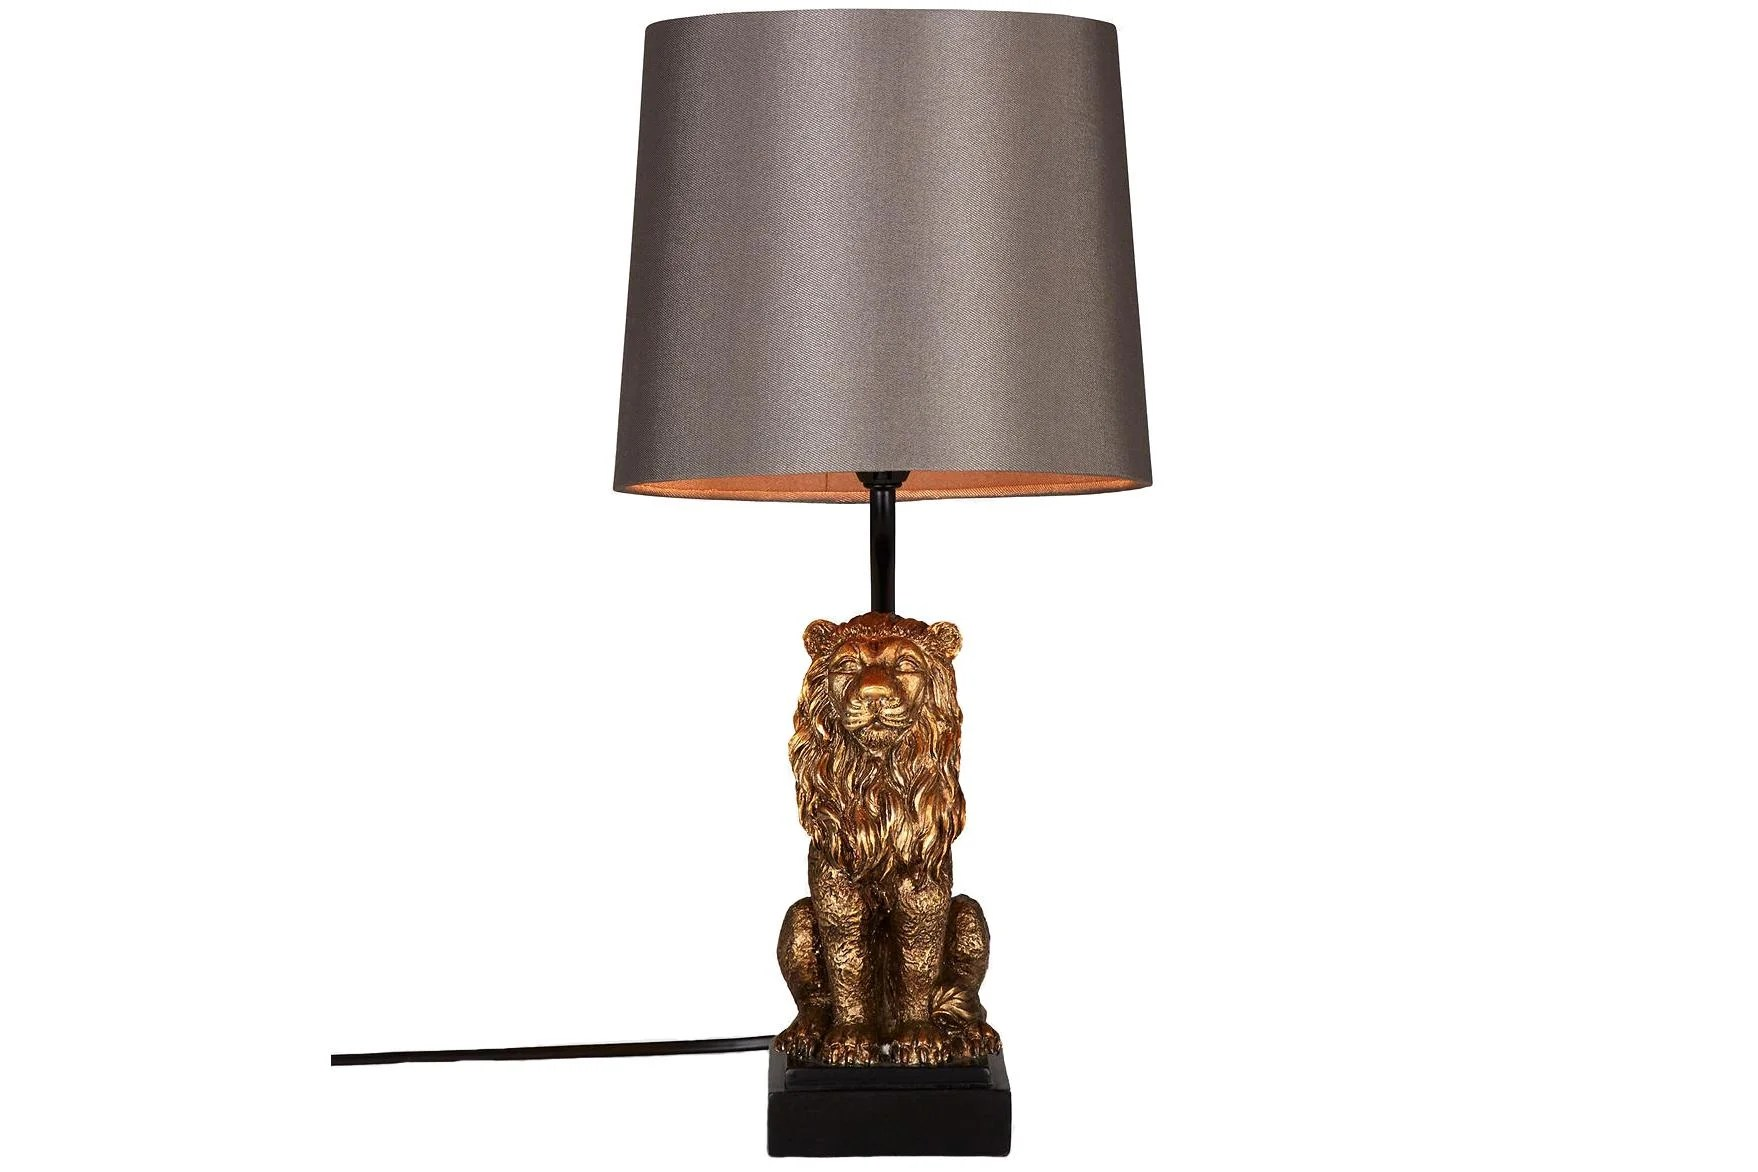 Glass Lamp John Lewis Best Unusual Table Lamps Best Statement Table Lamps London